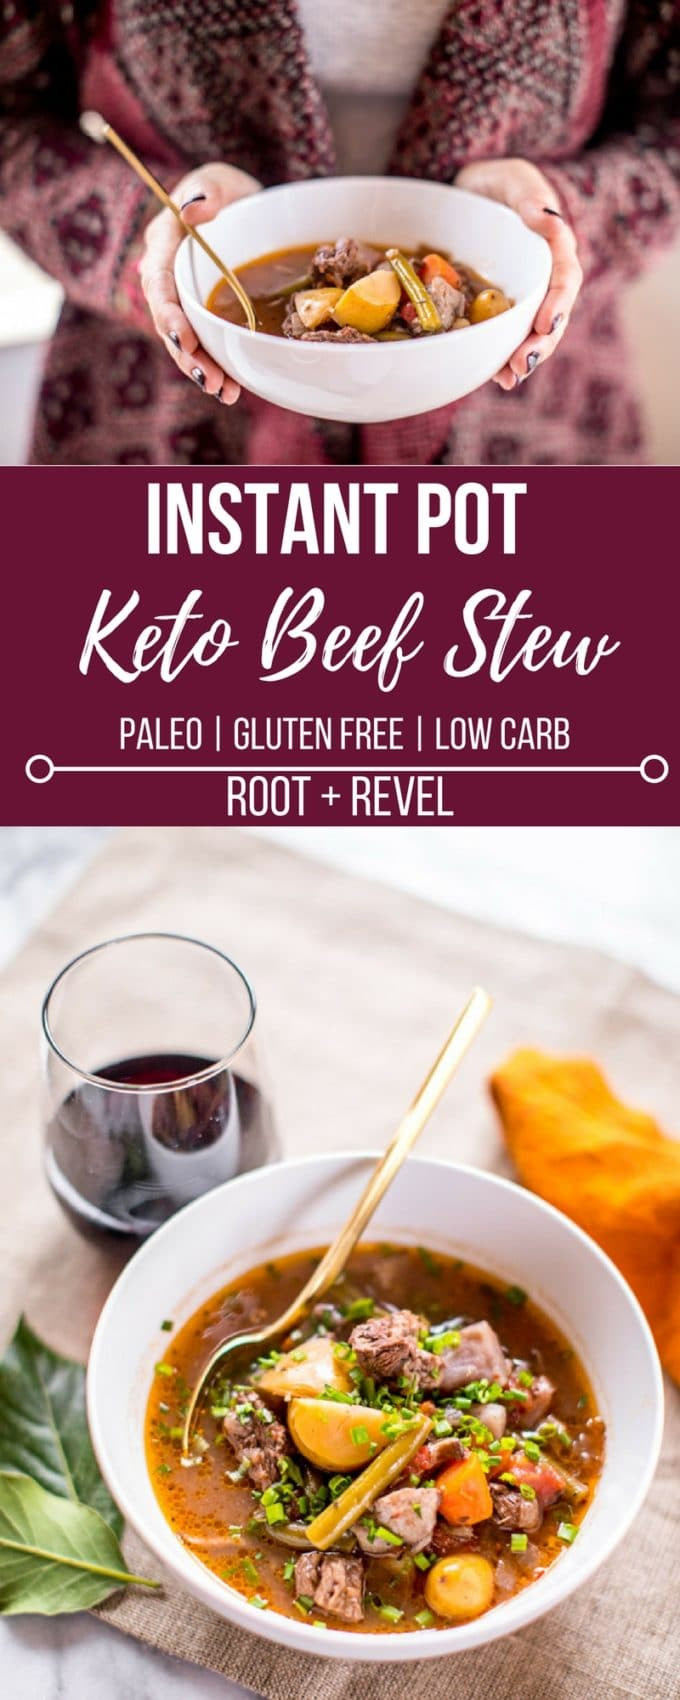 Instant Pot Keto Stew  Keto Beef Stew in the Instant Pot or Slow Cooker